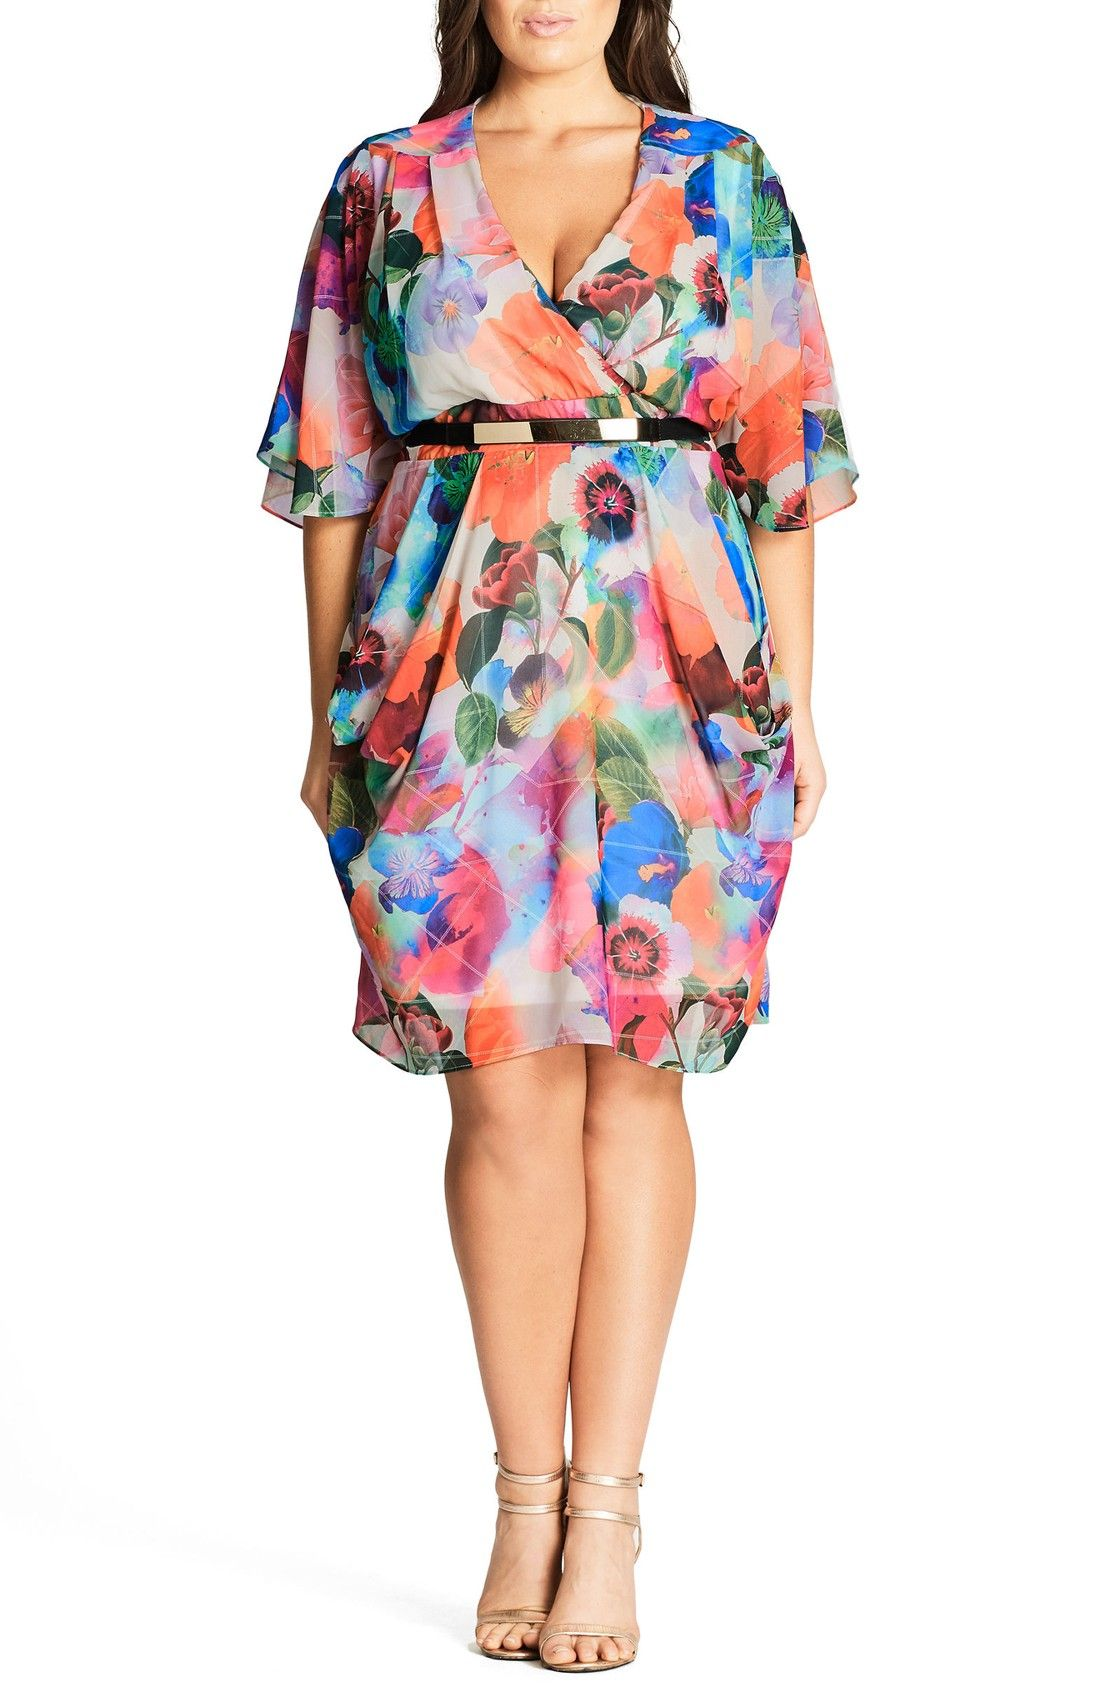 b33bfe1a7c5 Free shipping and returns on City Chic Floral Print Faux Wrap Dress (Plus  Size) at Nordstrom.com. Bring a welcome pop of color to spring with this ...